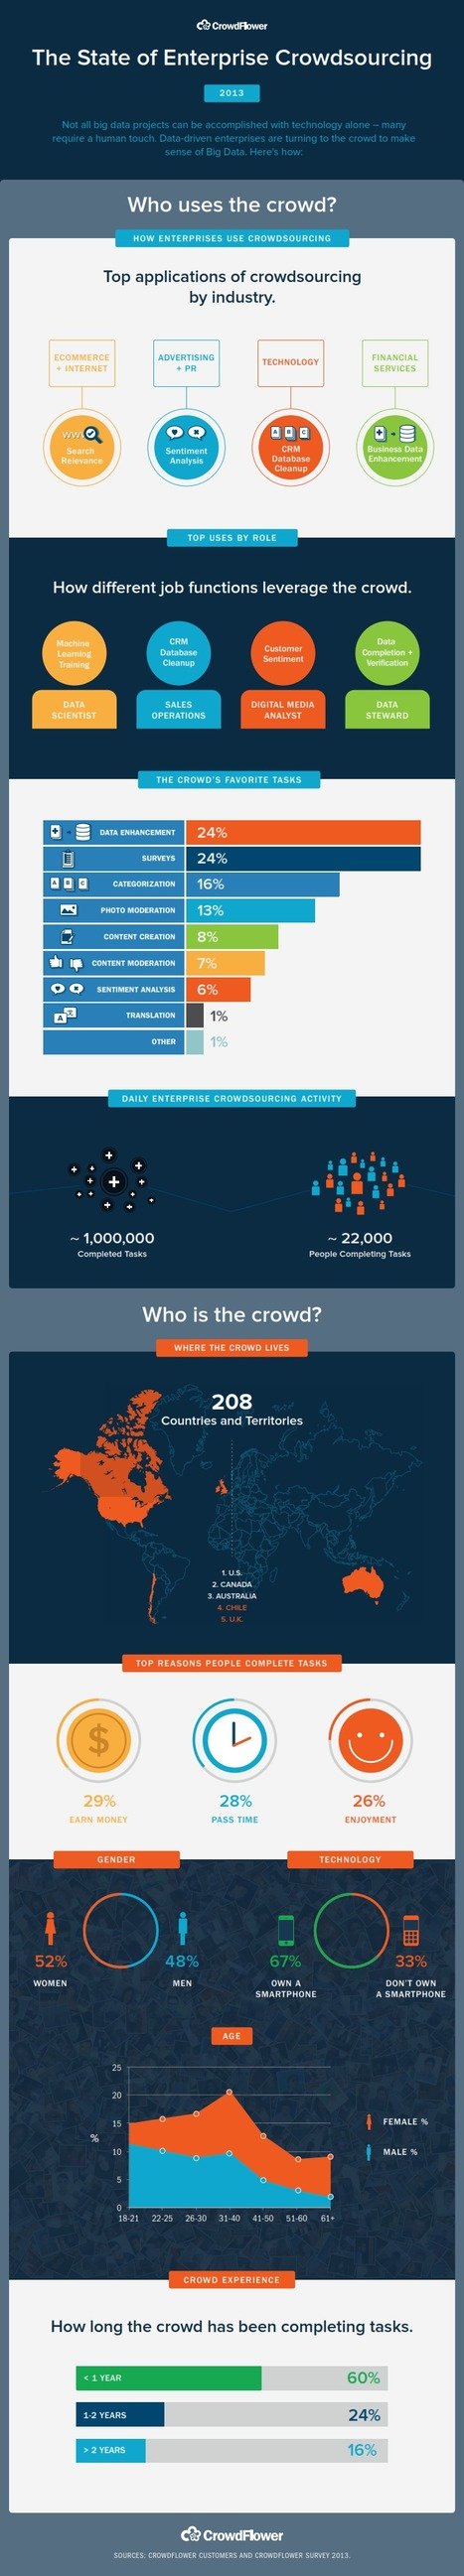 INFOGRAPHIC: The State Of Enterprise Crowdsourcing | Cloud Central | Scoop.it